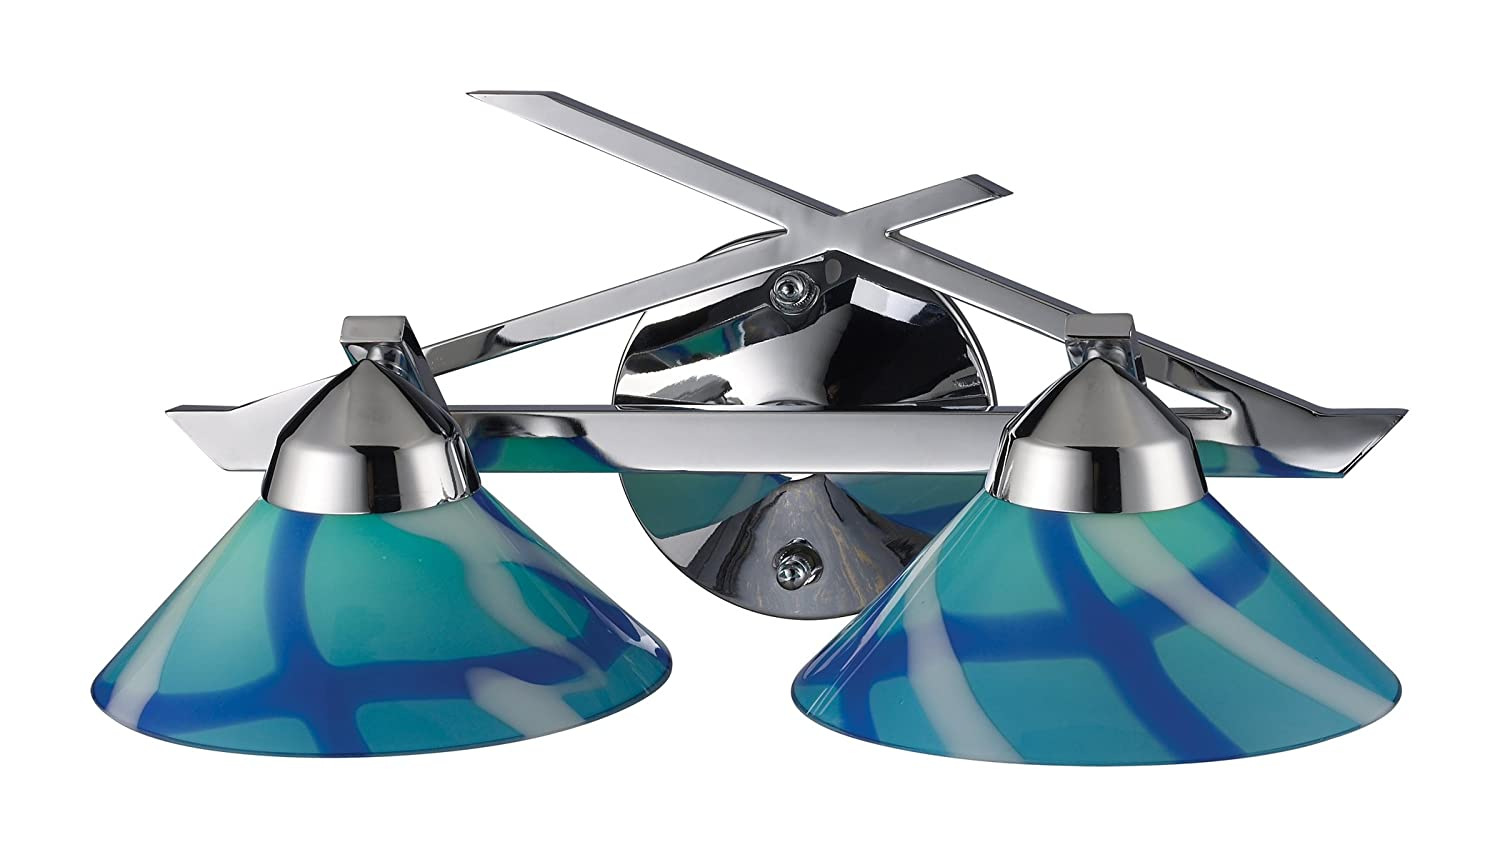 Elk 1471 2CAR 2-Light Wall Bracket In Polished Chrome and Caribbean Glass